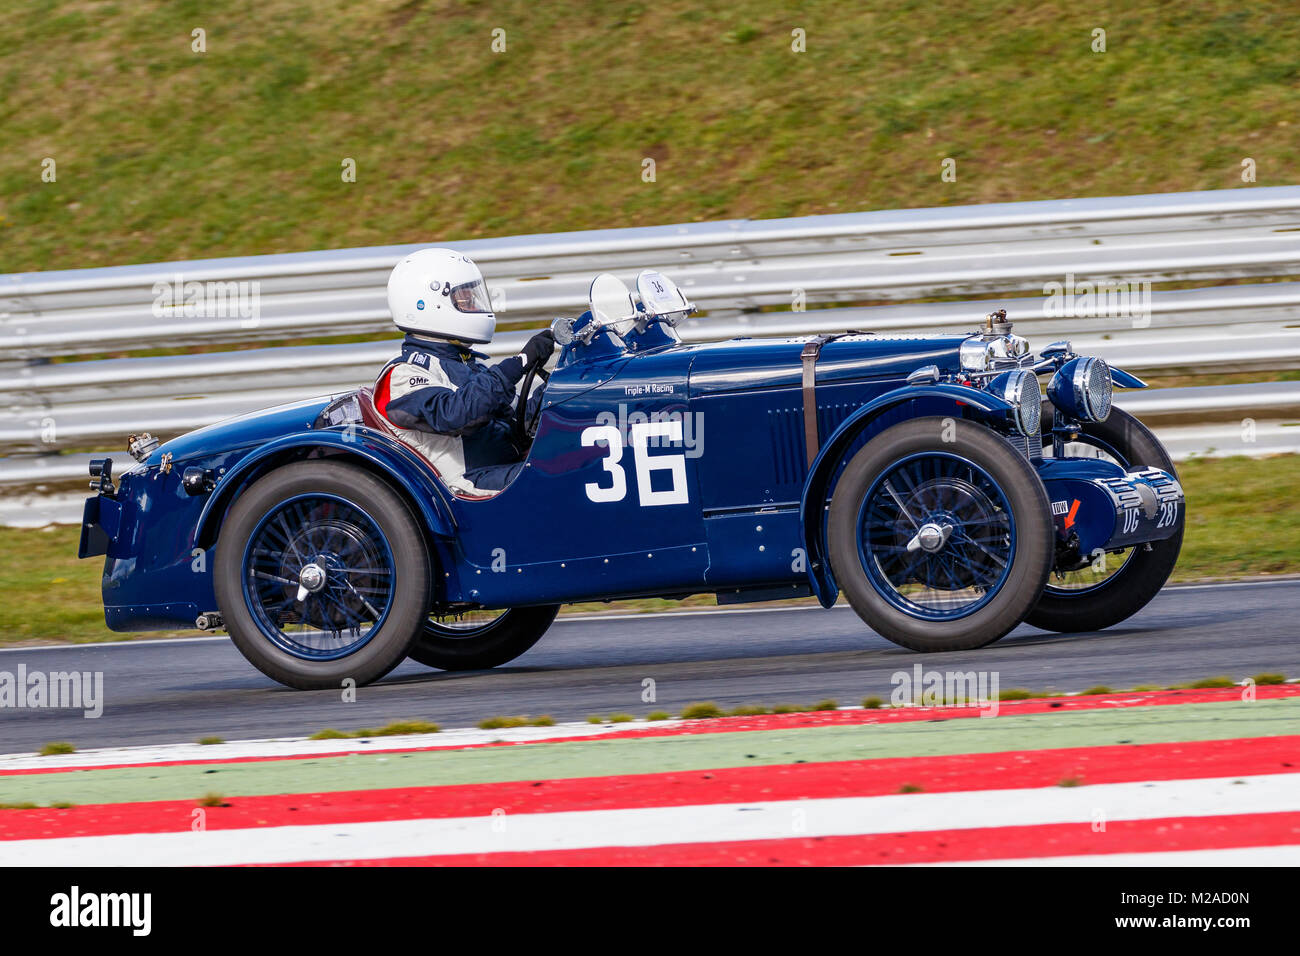 1932 MG C-Type with driver Christopher Edmondson at the 2017 Formula Vintage meeting, Snetterton, Norfolk, UK. - Stock Image